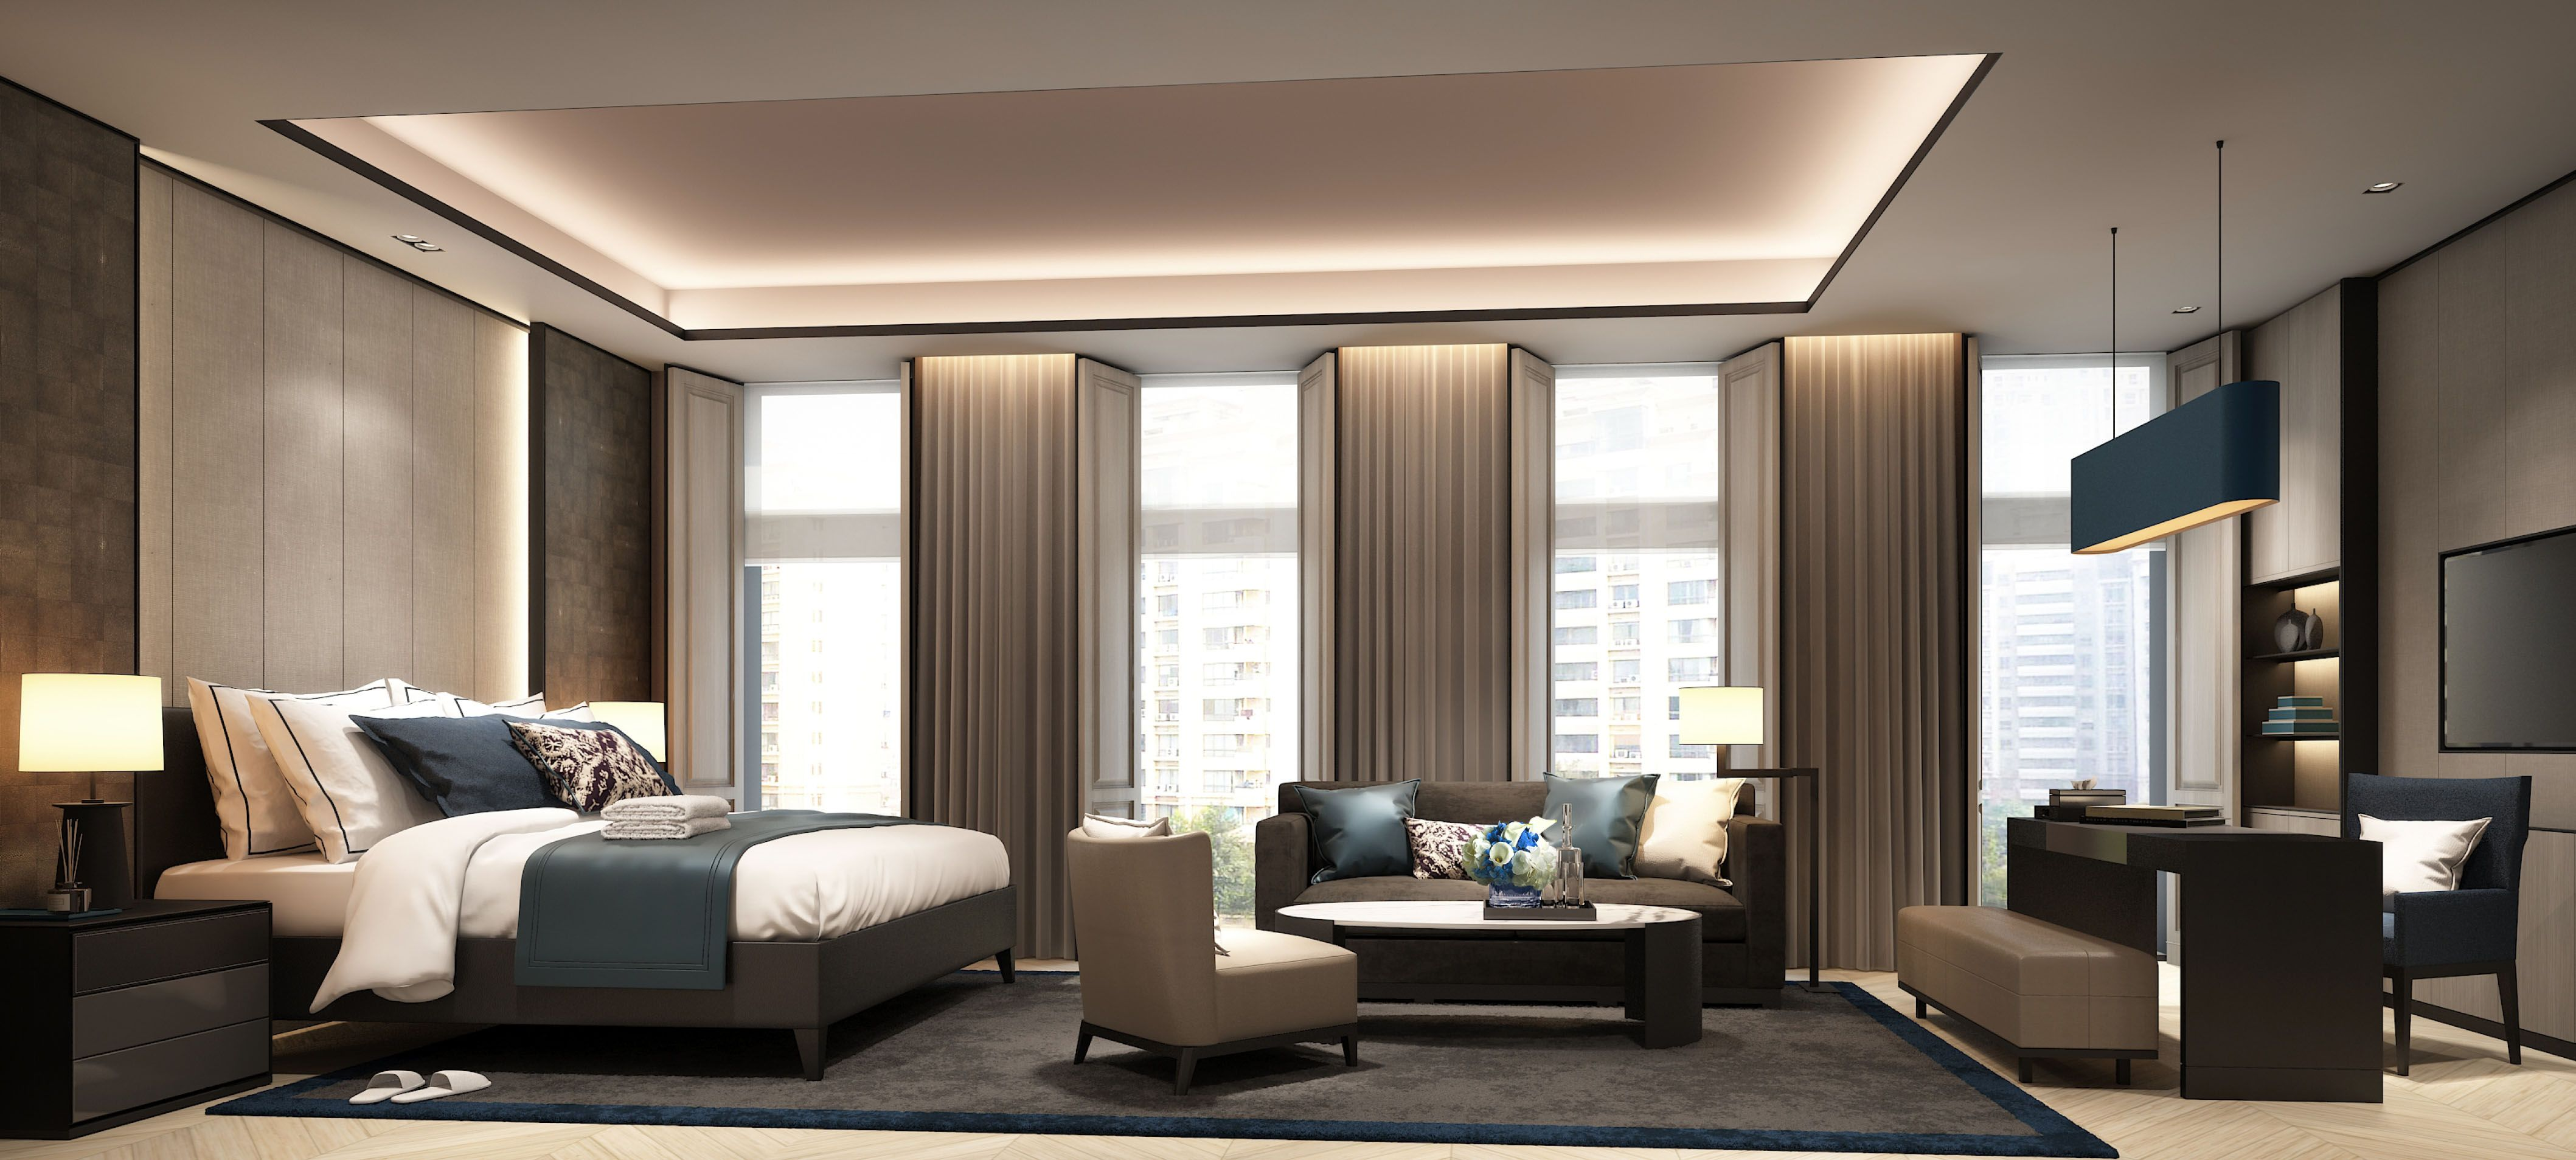 Bedroom Suite Designs Scda Hotel Development Gurgaon India Superior Guestroom  City